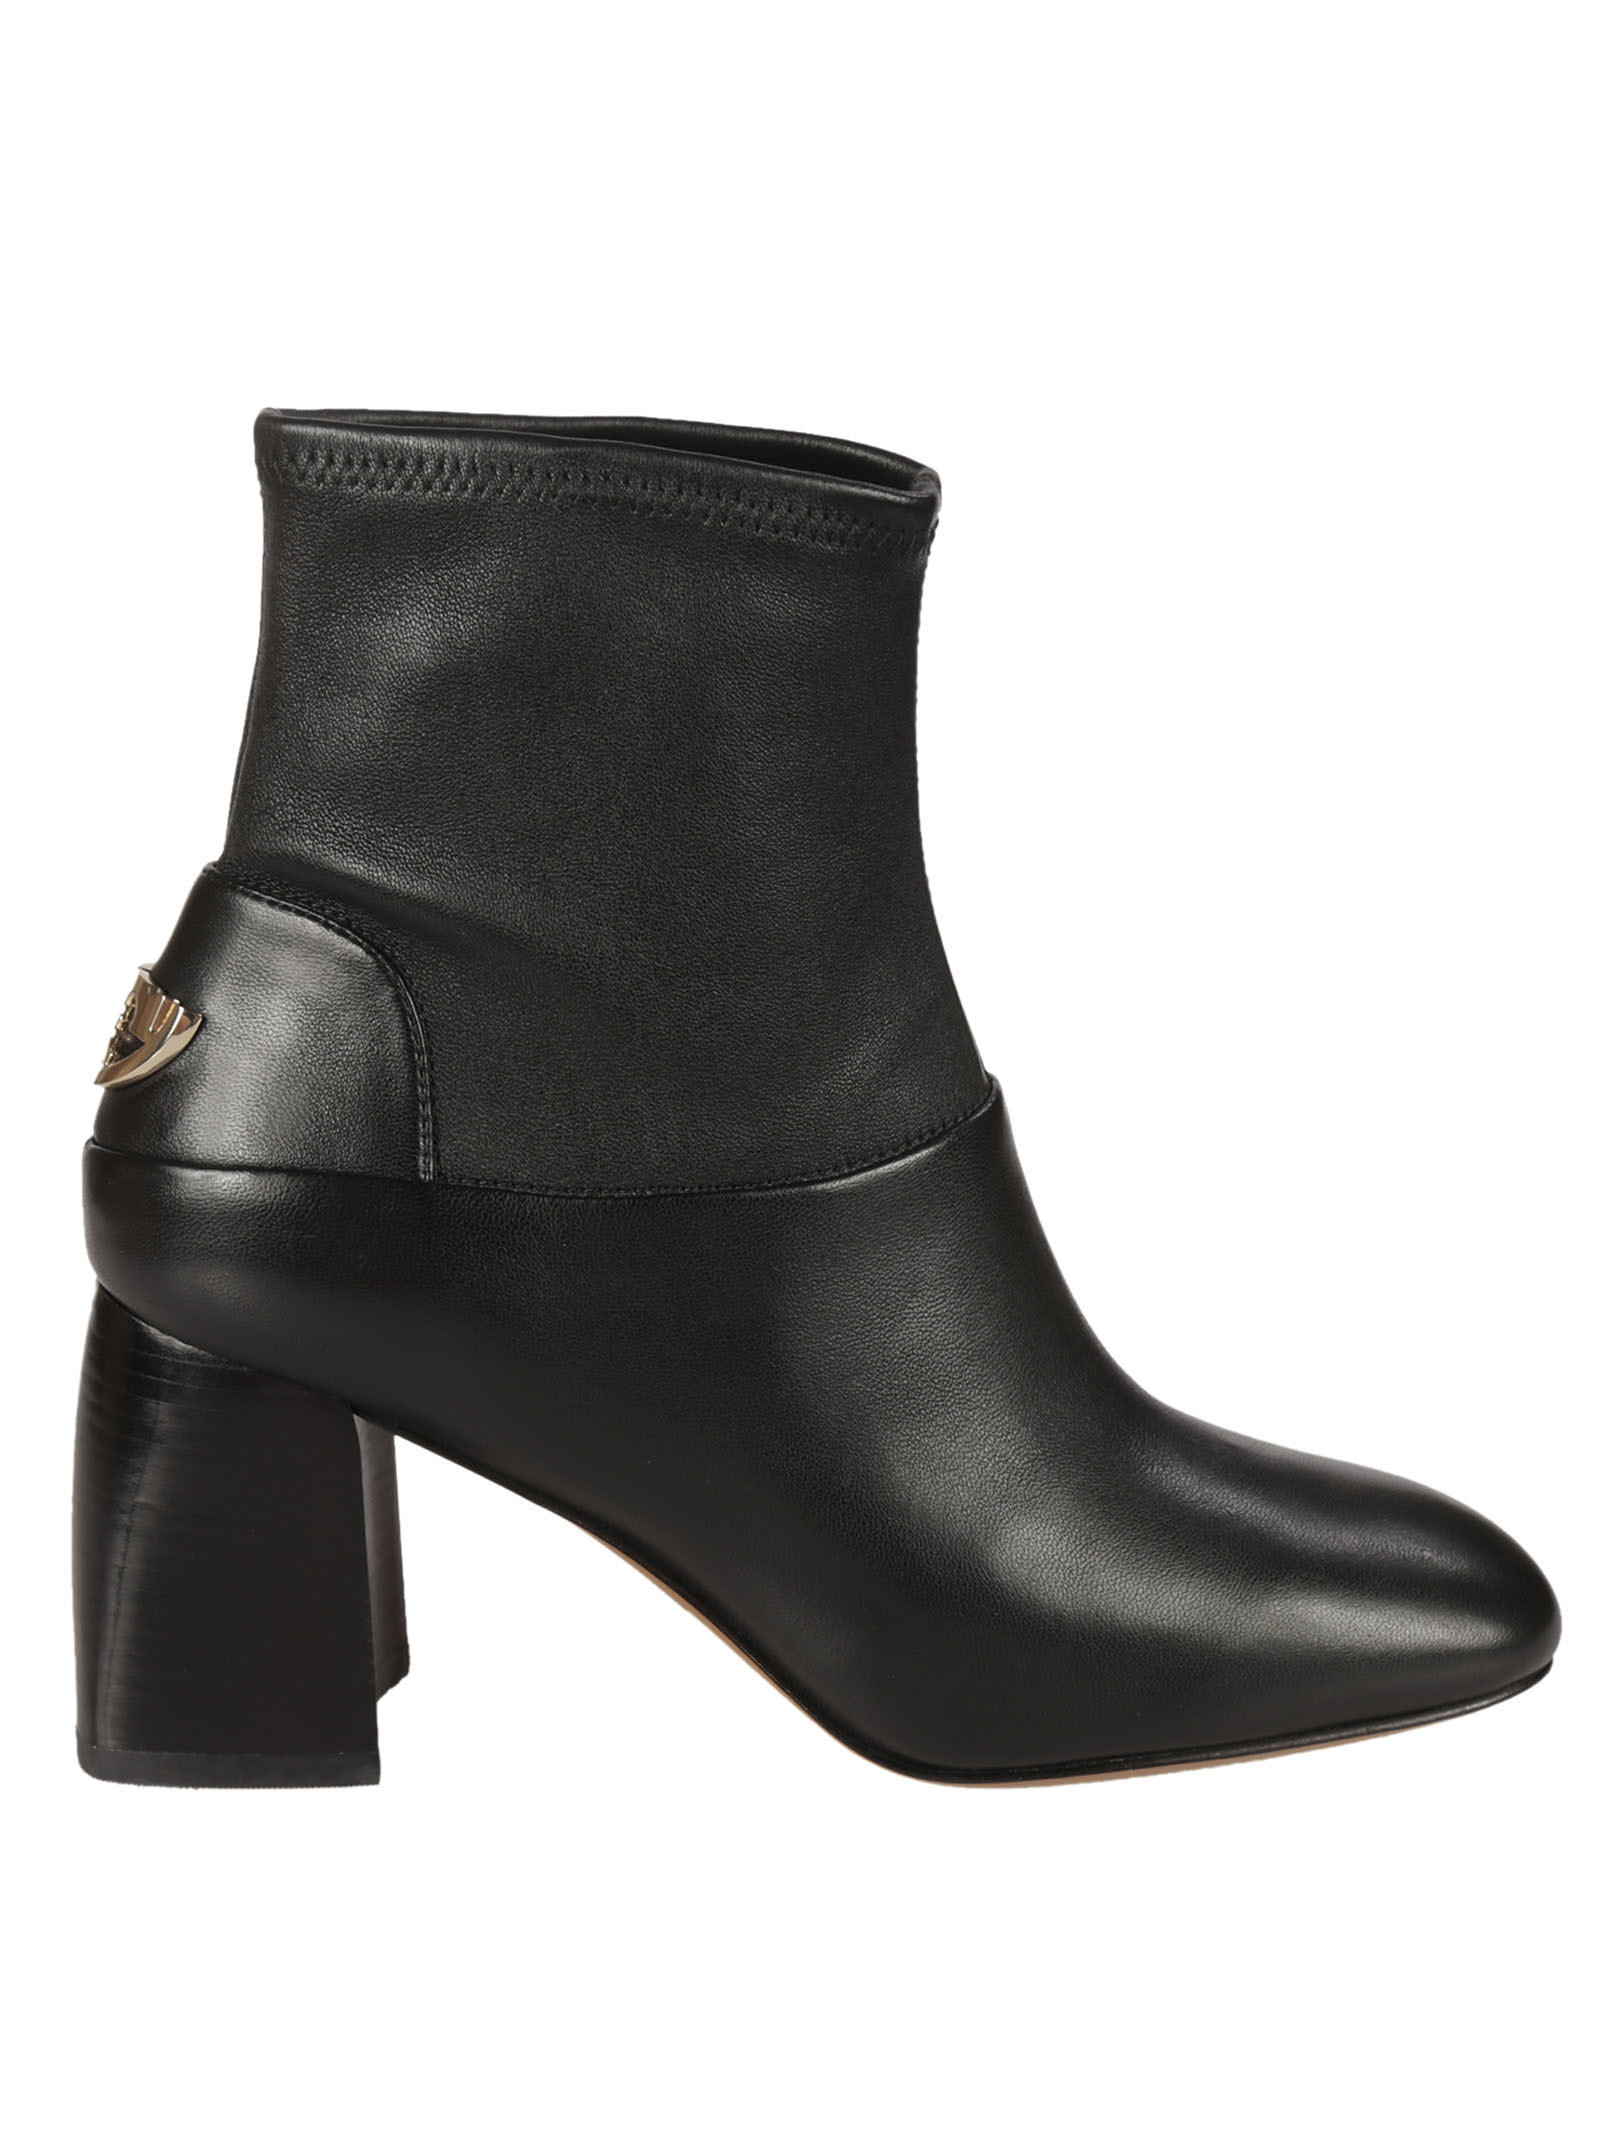 Tory Burch Sidney Ankle Boots - Tory Burch - Gentle